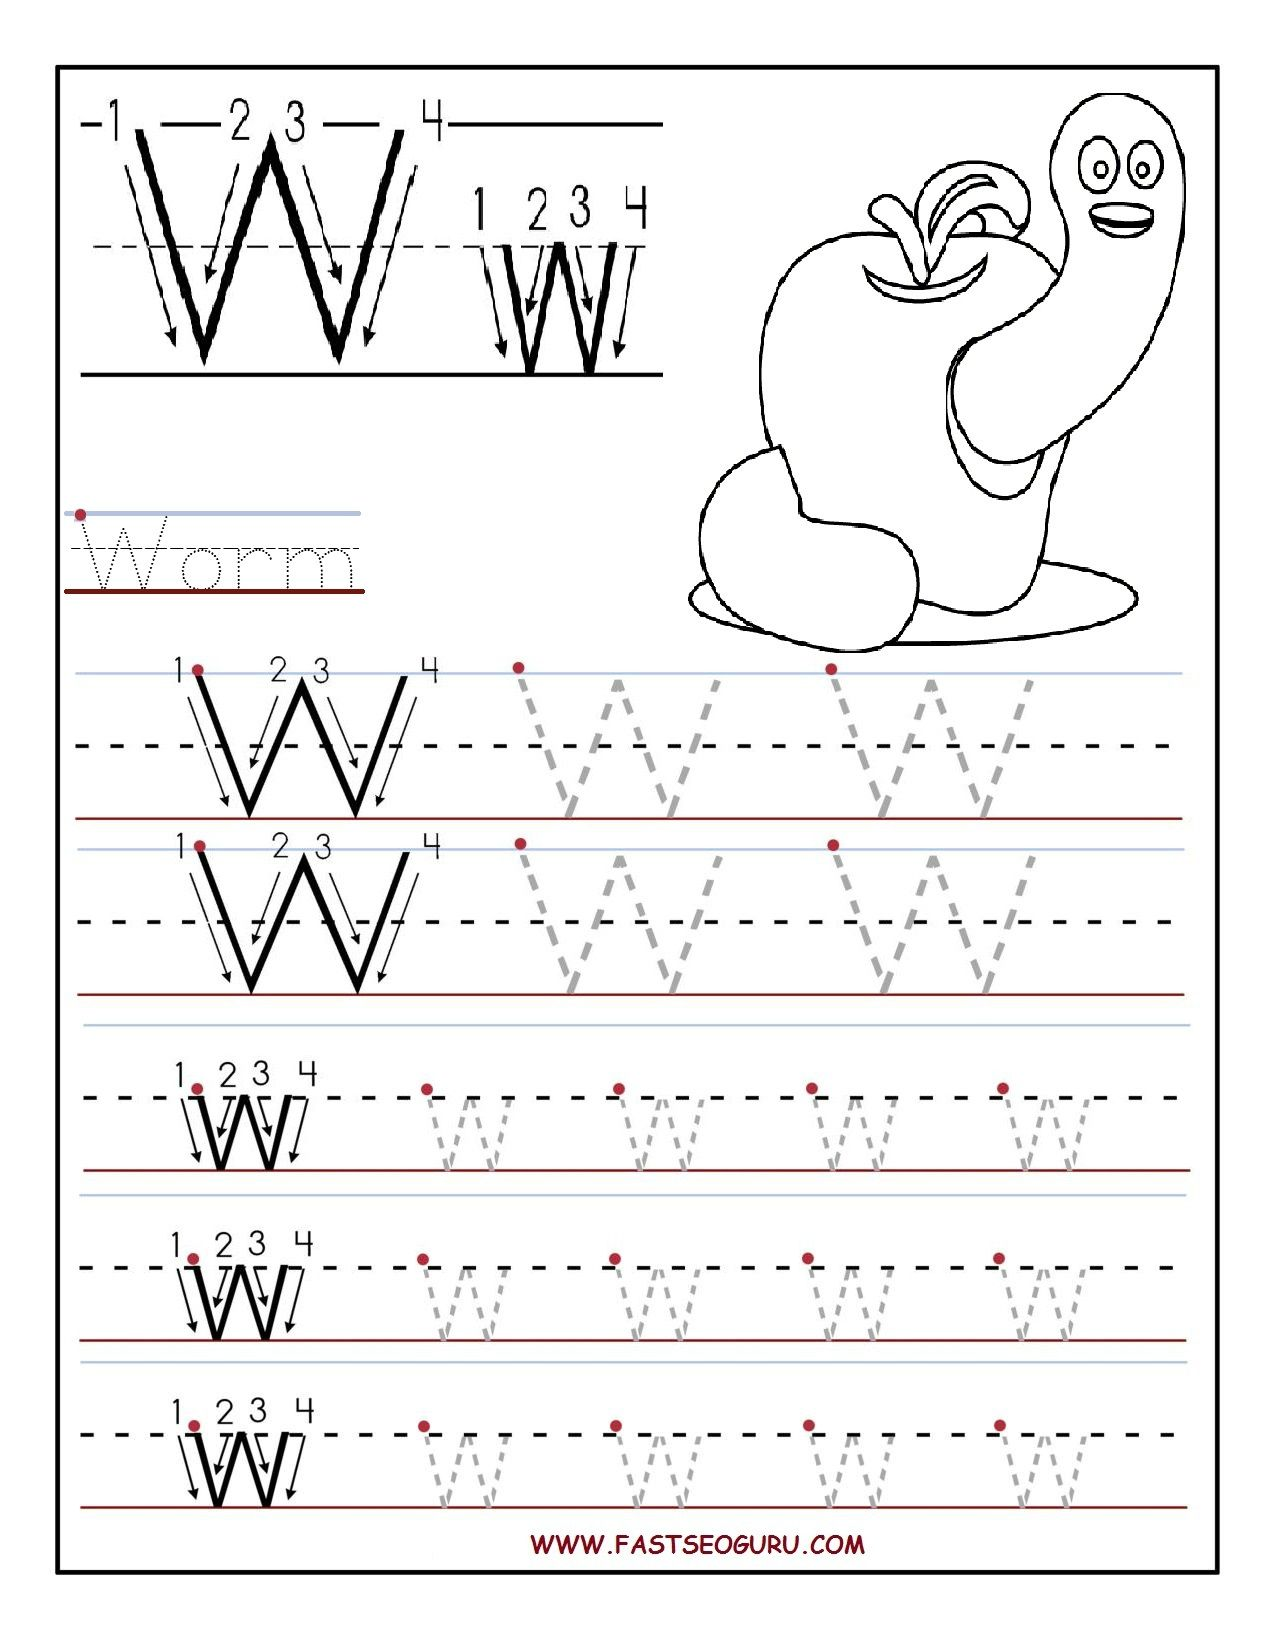 Printable letter W tracing worksheets for preschool | going gluten ...